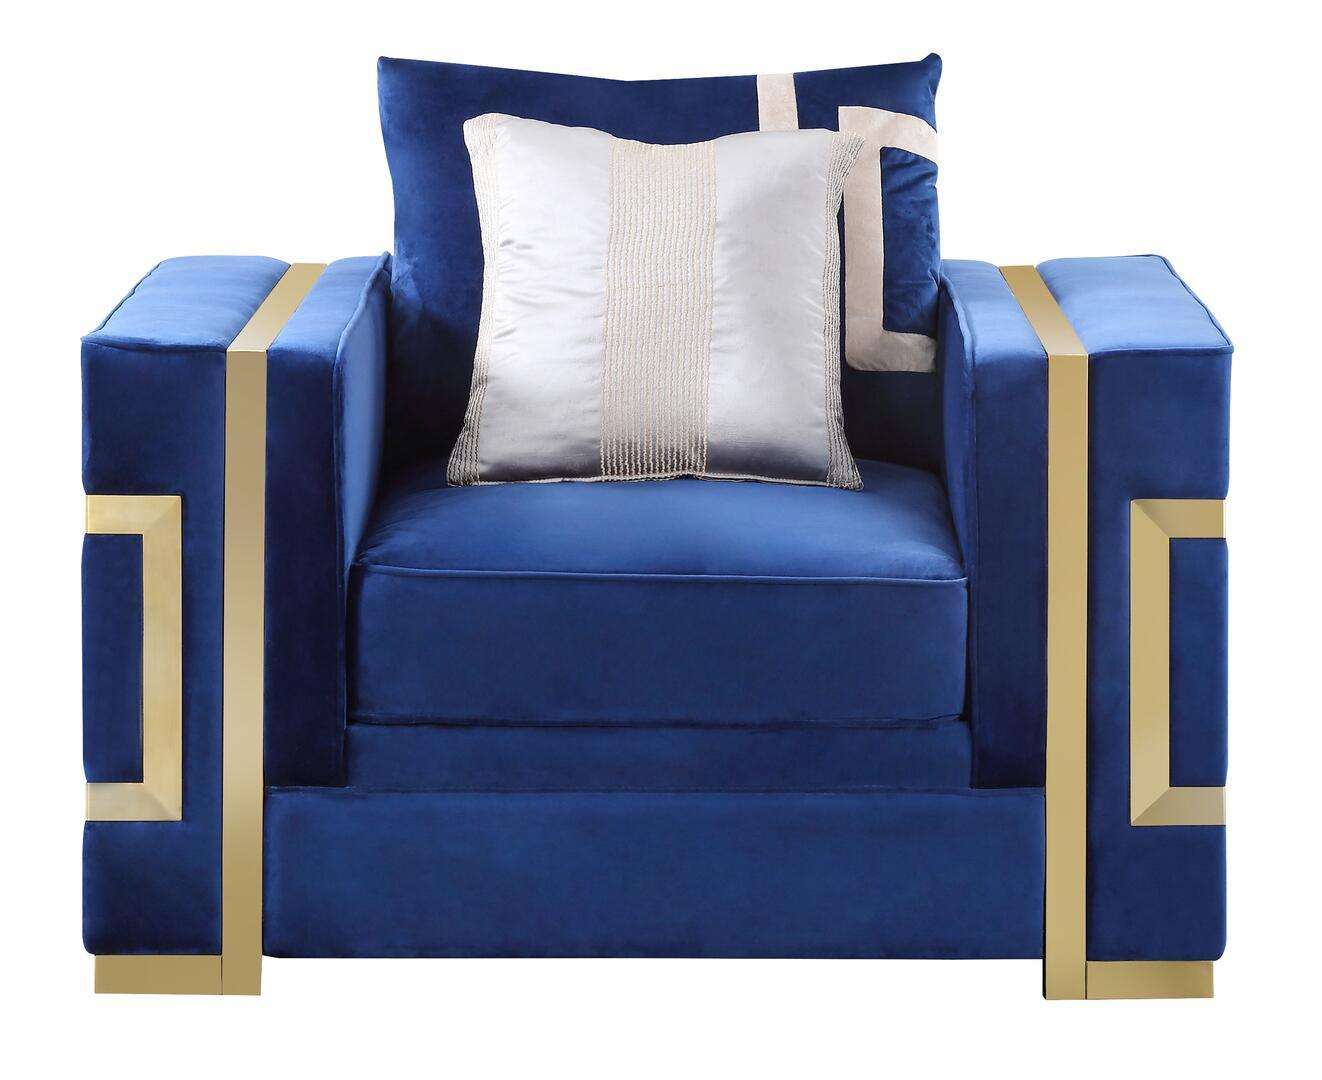 Transitional Blue, Gold Fabric Arm Chairs 1 pcs Cosmos Furniture 30367BLLAW